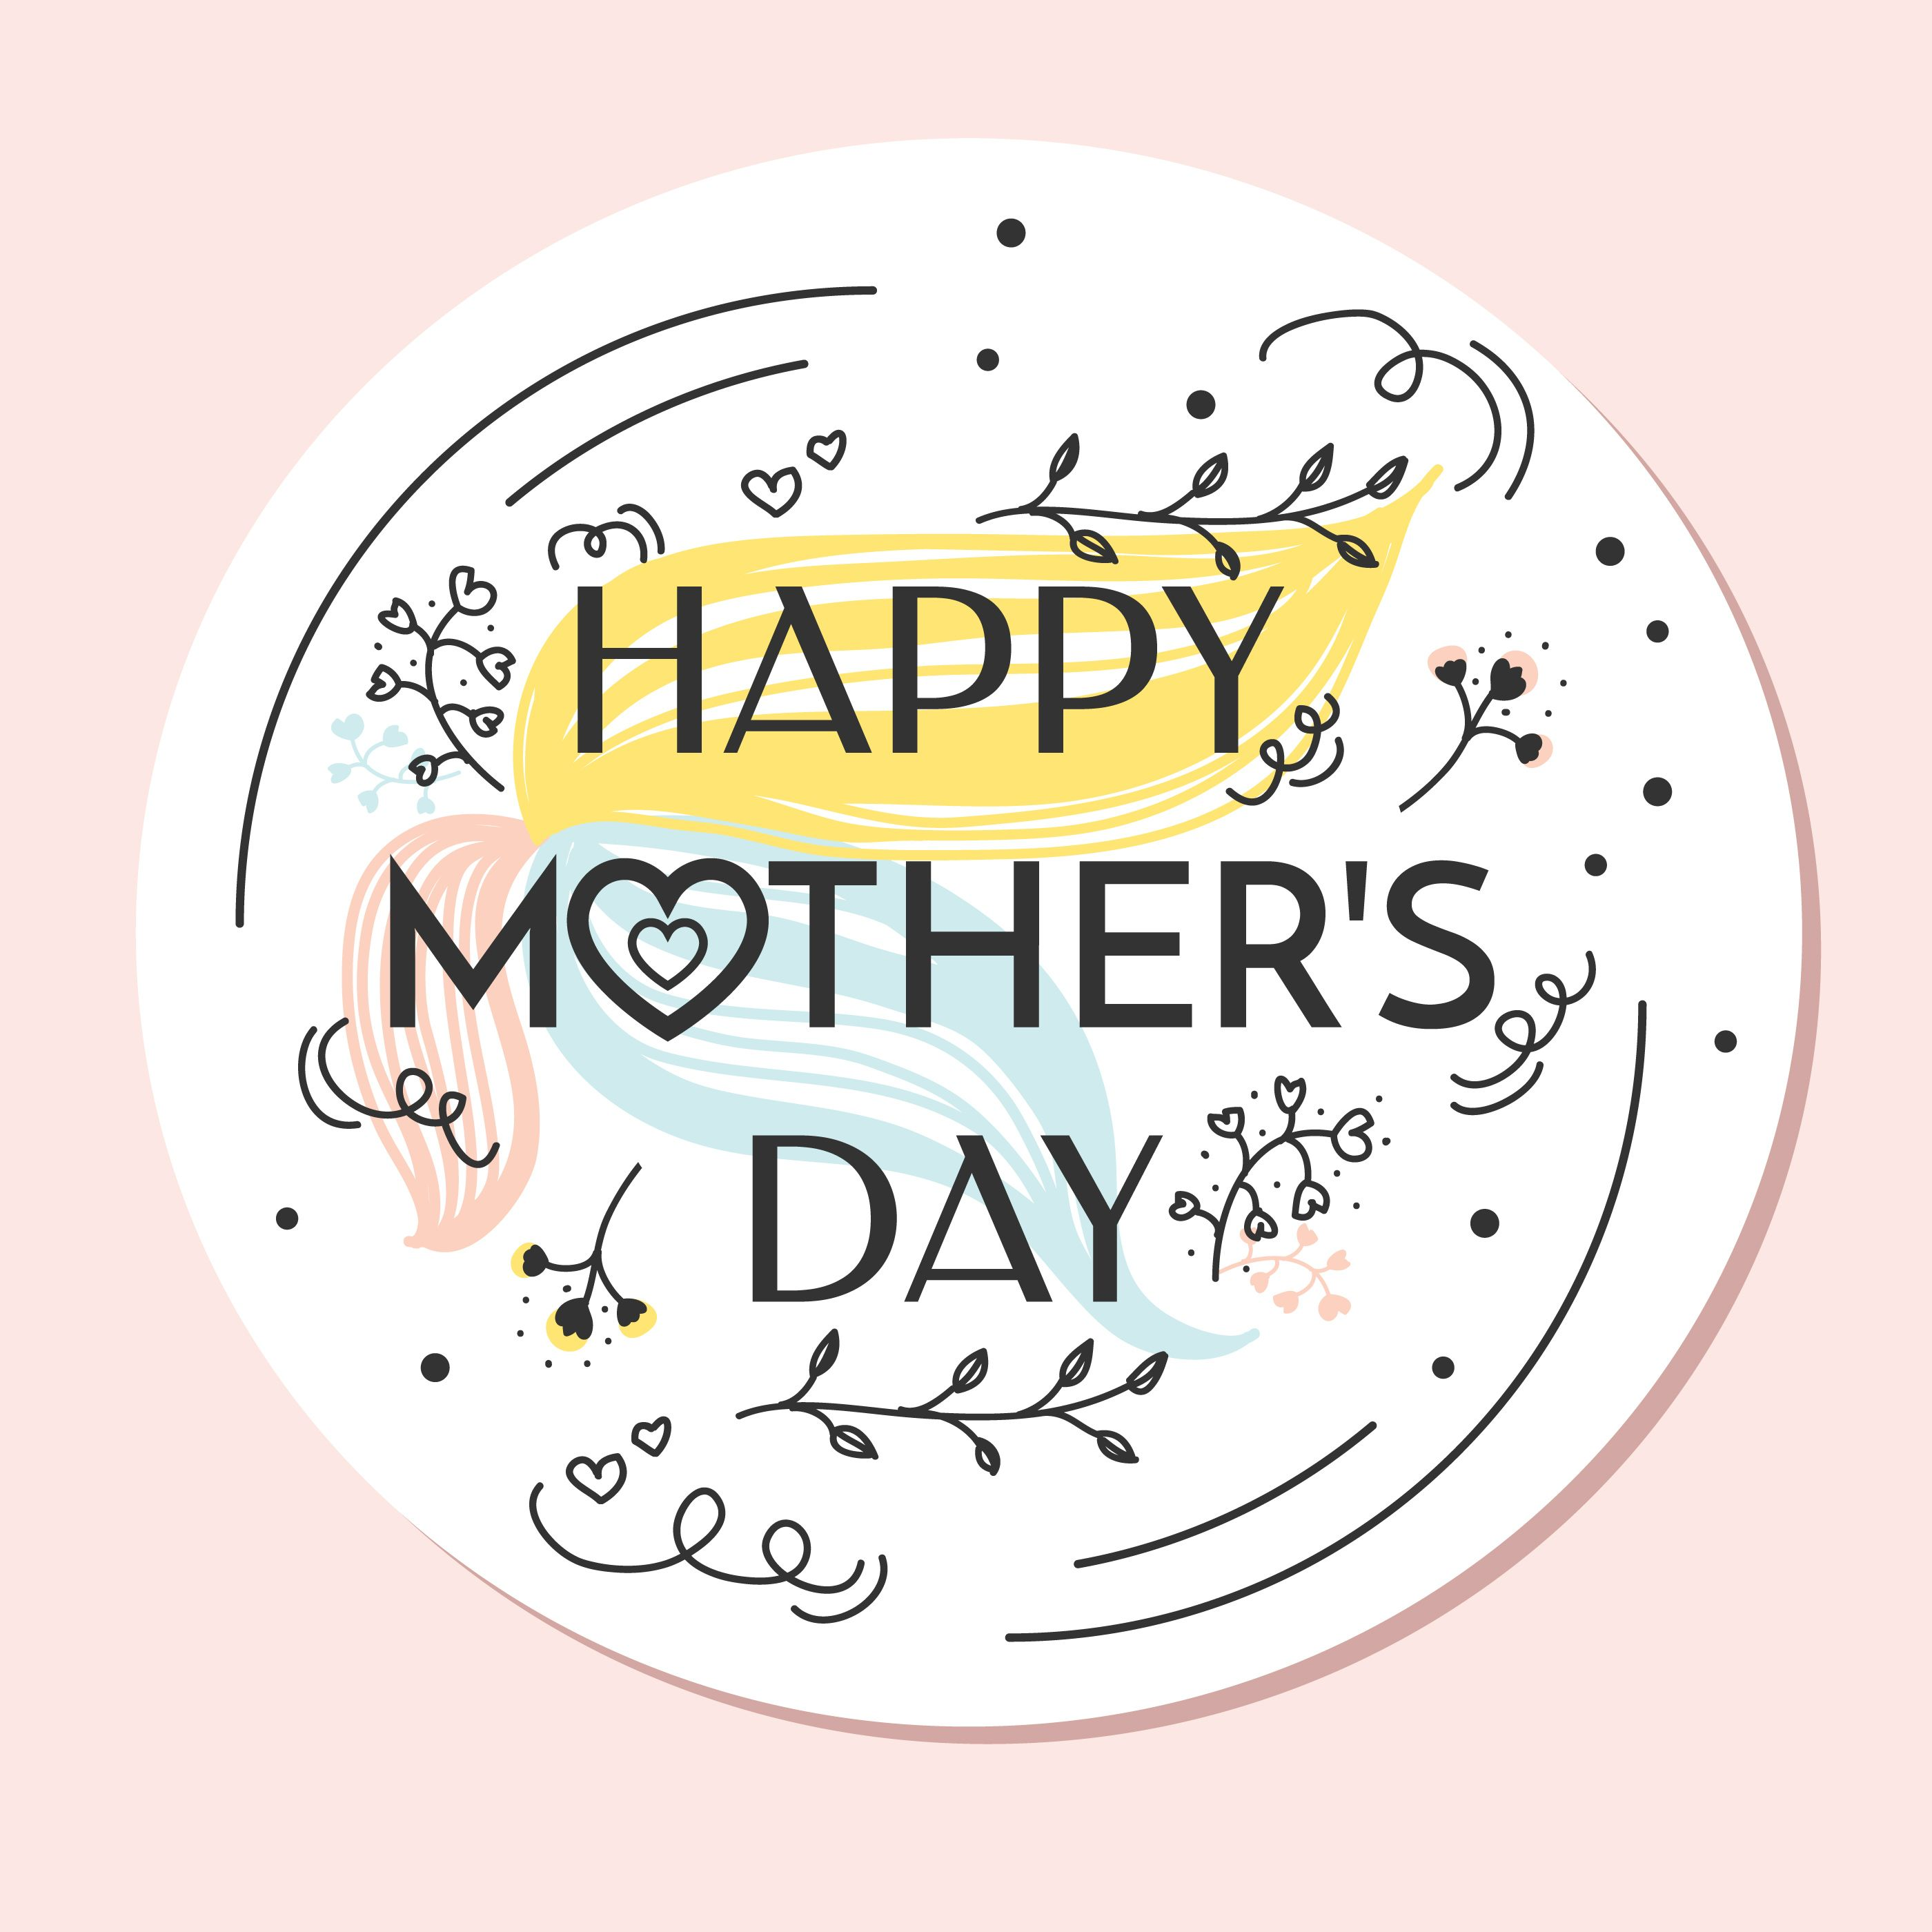 Happy Mothers Day Vector Choose From Thousands Of Free Vectors Clip Art Designs Icons And Ill Mothers Day Images Happy Mothers Day Images Happy Mothers Day